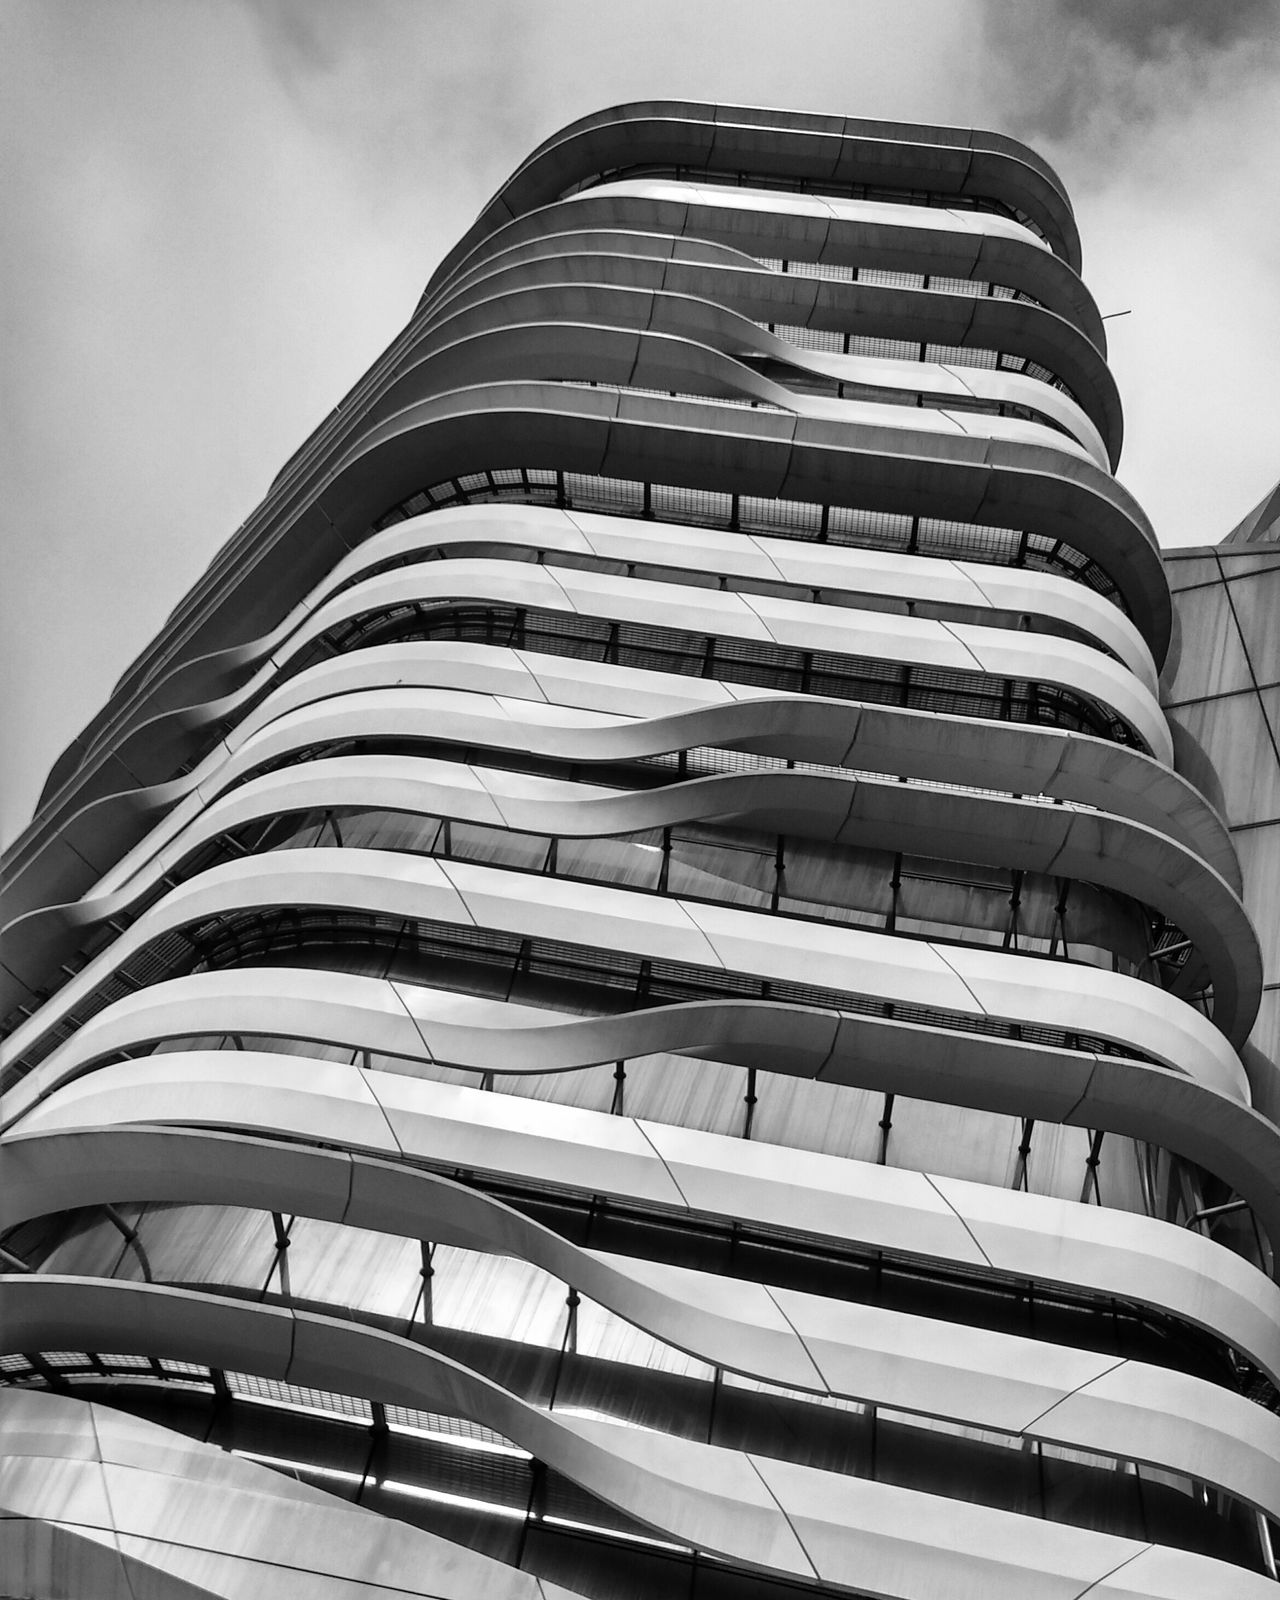 Architecture_collection Architecture ArchiTexture Zaha Hadid Building Architecturephotography Blackandwhite Photography Black And White HongKong City The Architect - 2016 EyeEm Awards Monochrome Photography